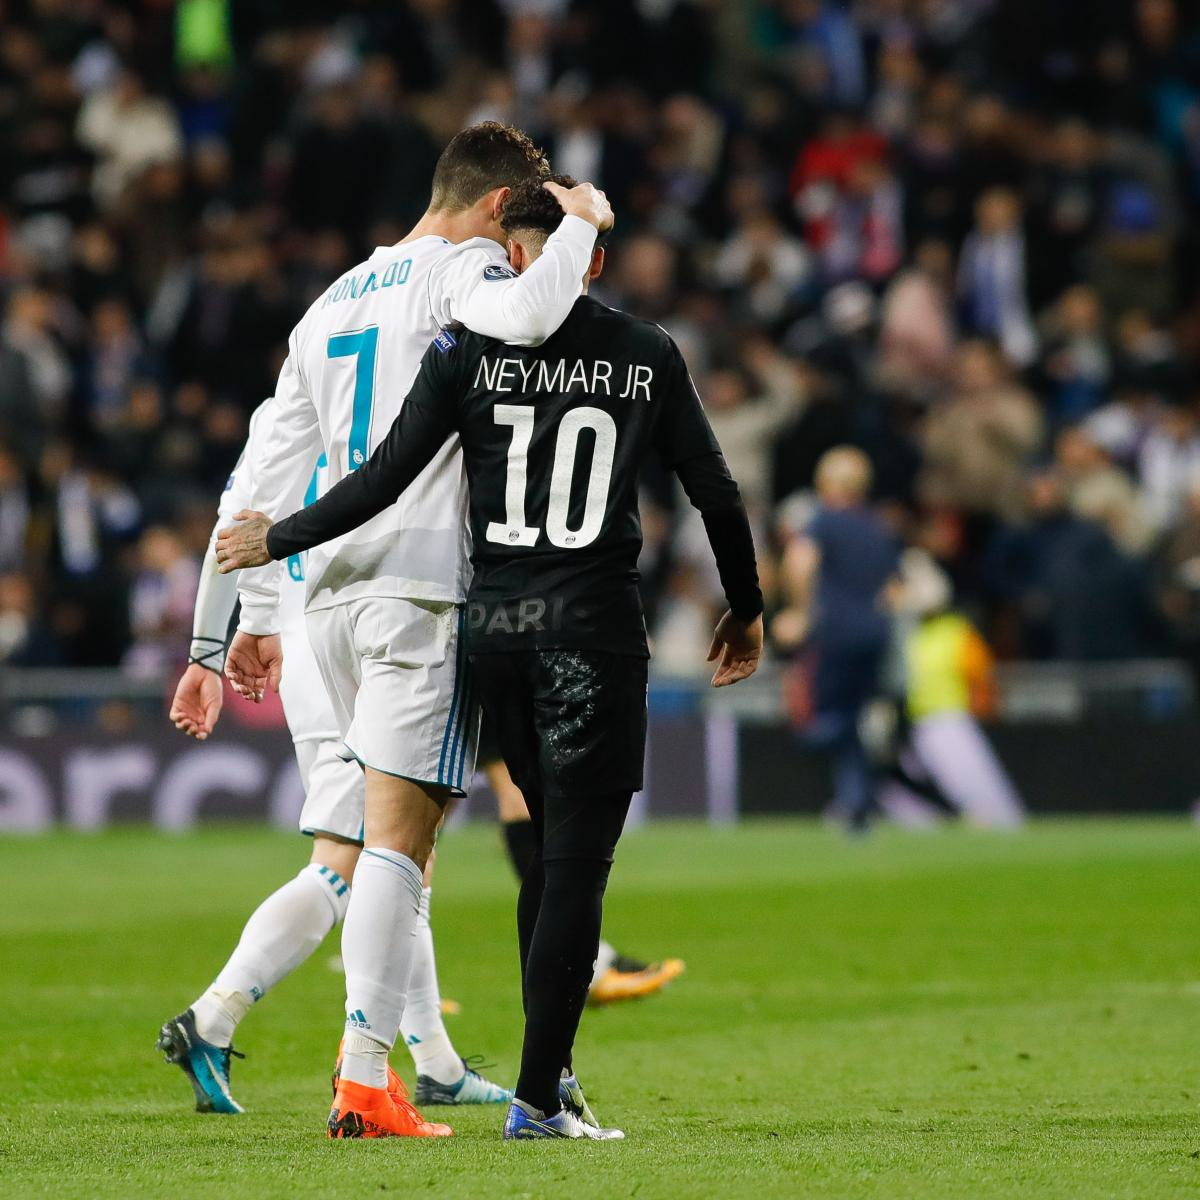 Cristiano Ronaldo I M Not Playing Just Lionel Messi: Neymar Can't Play At Same Club As Cristiano Ronaldo Or